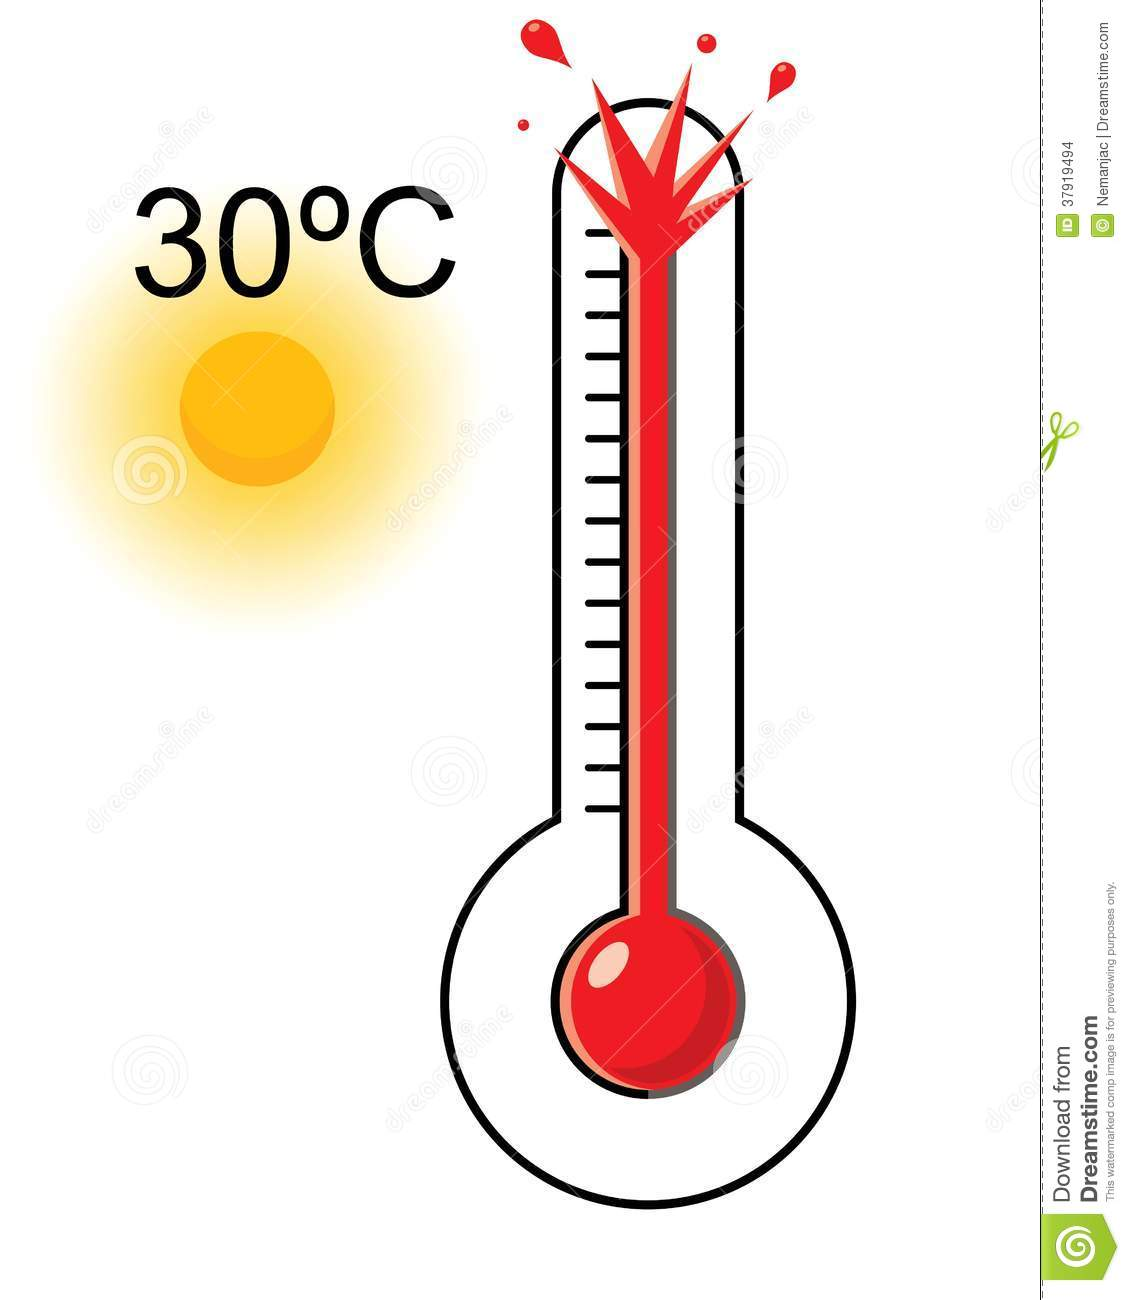 Pics Photos Thermometers Clip Art Thermometer Clip Art.